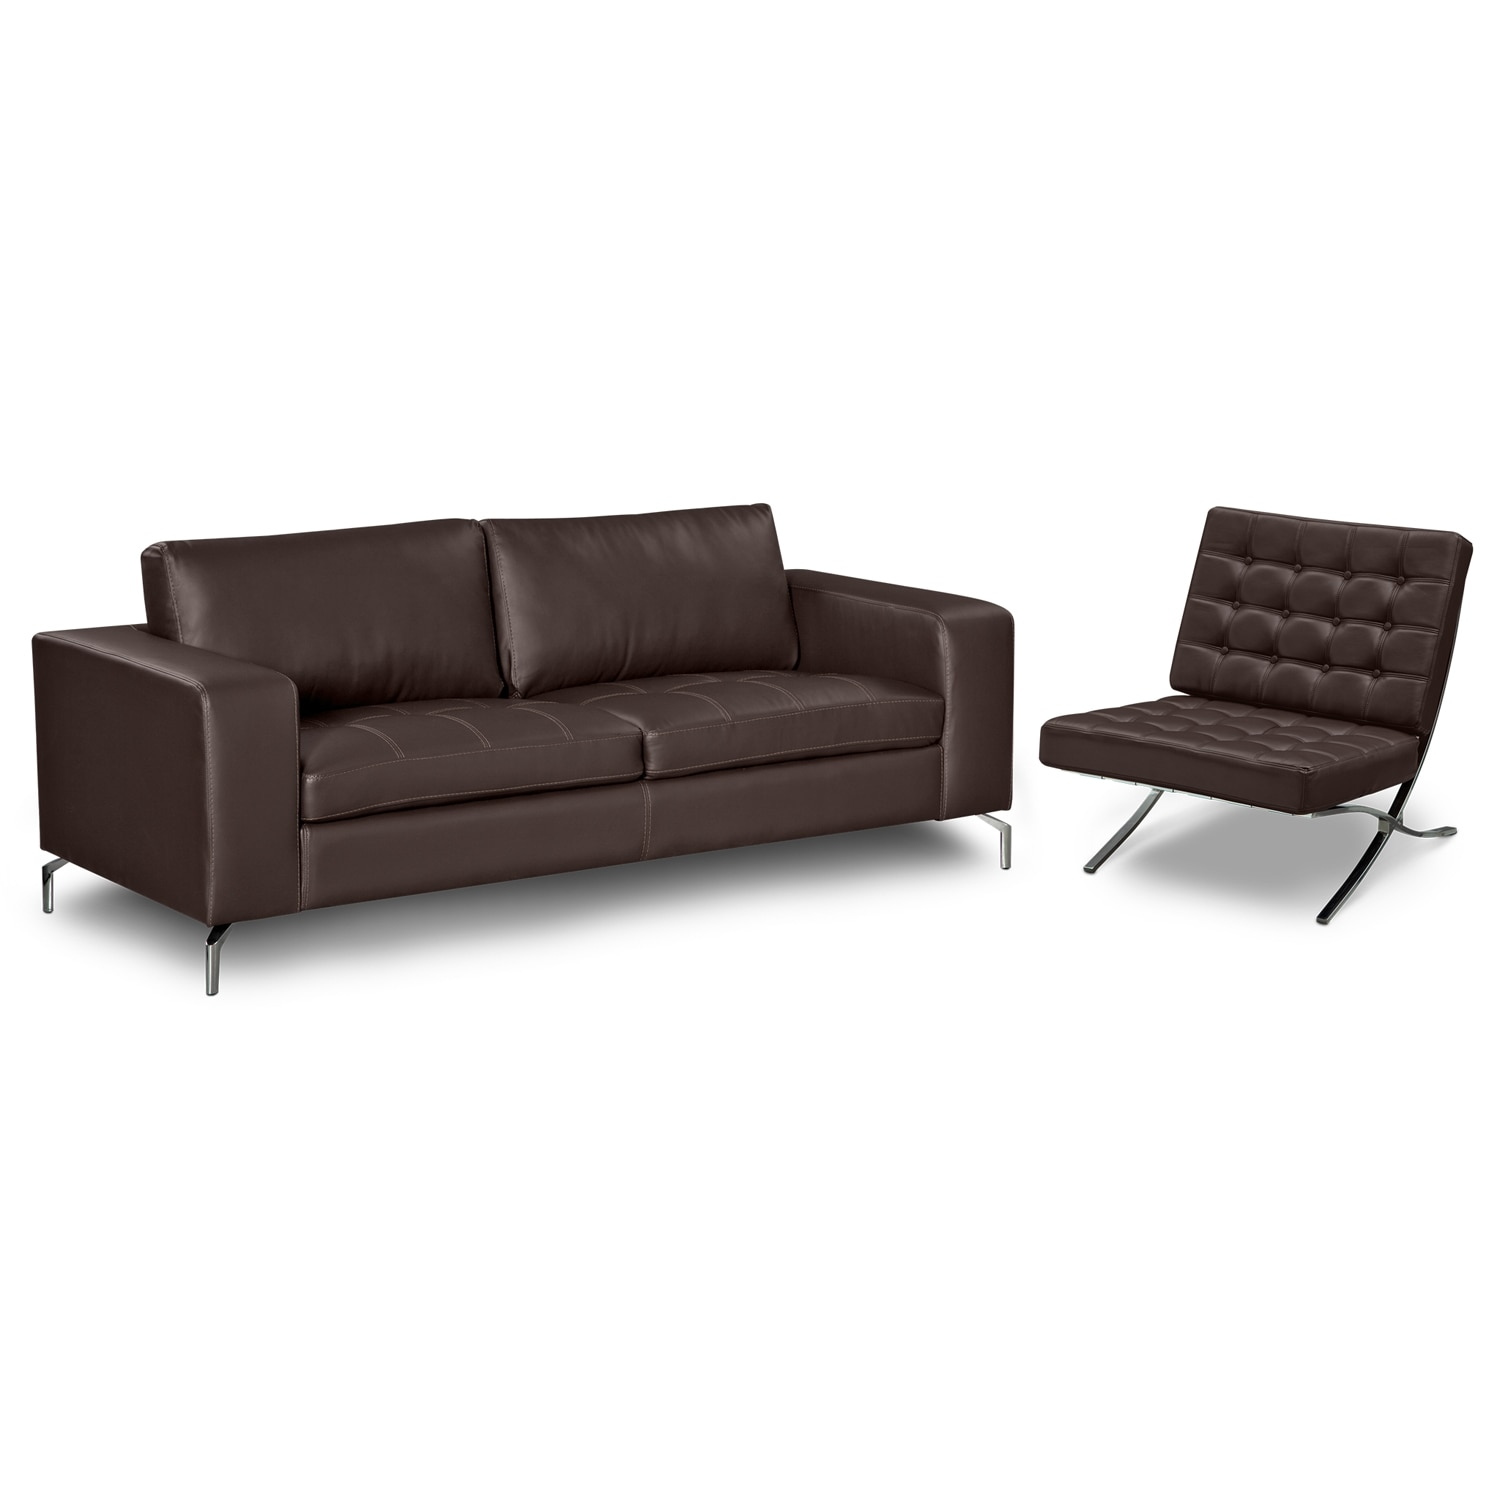 living room furniture mirage godiva 2 pc living room w accent chair